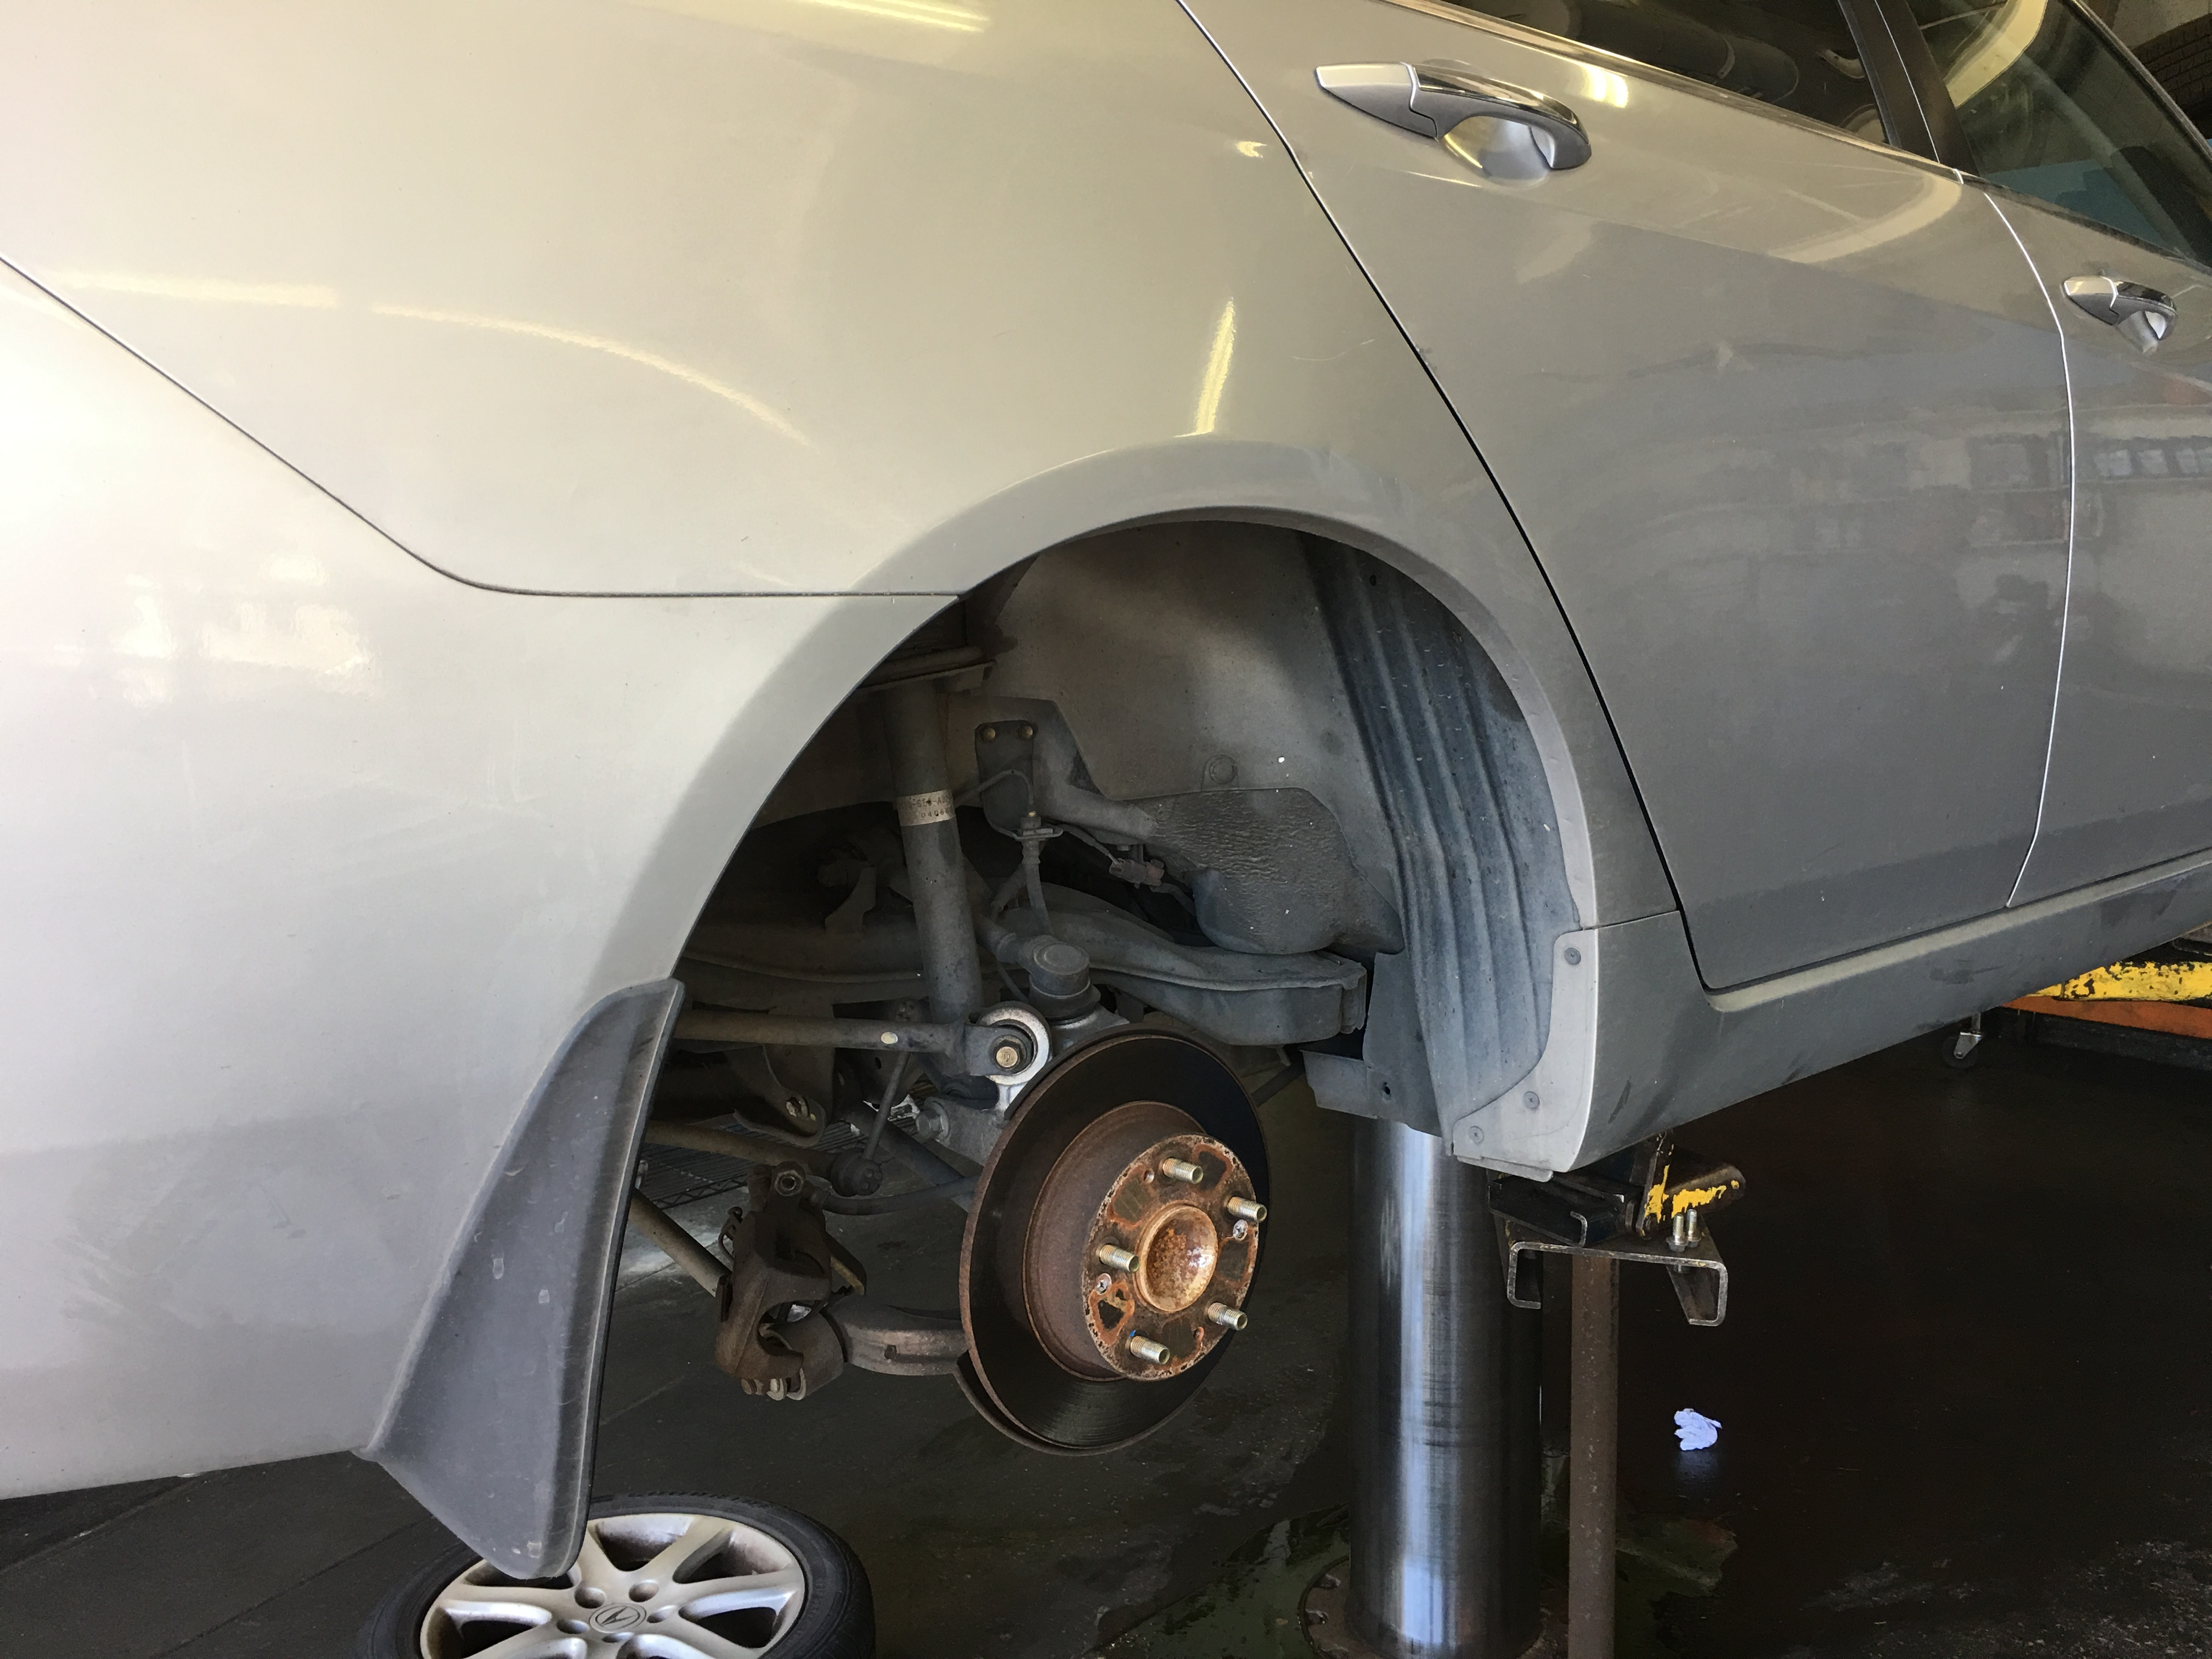 Brake inspection and tire change